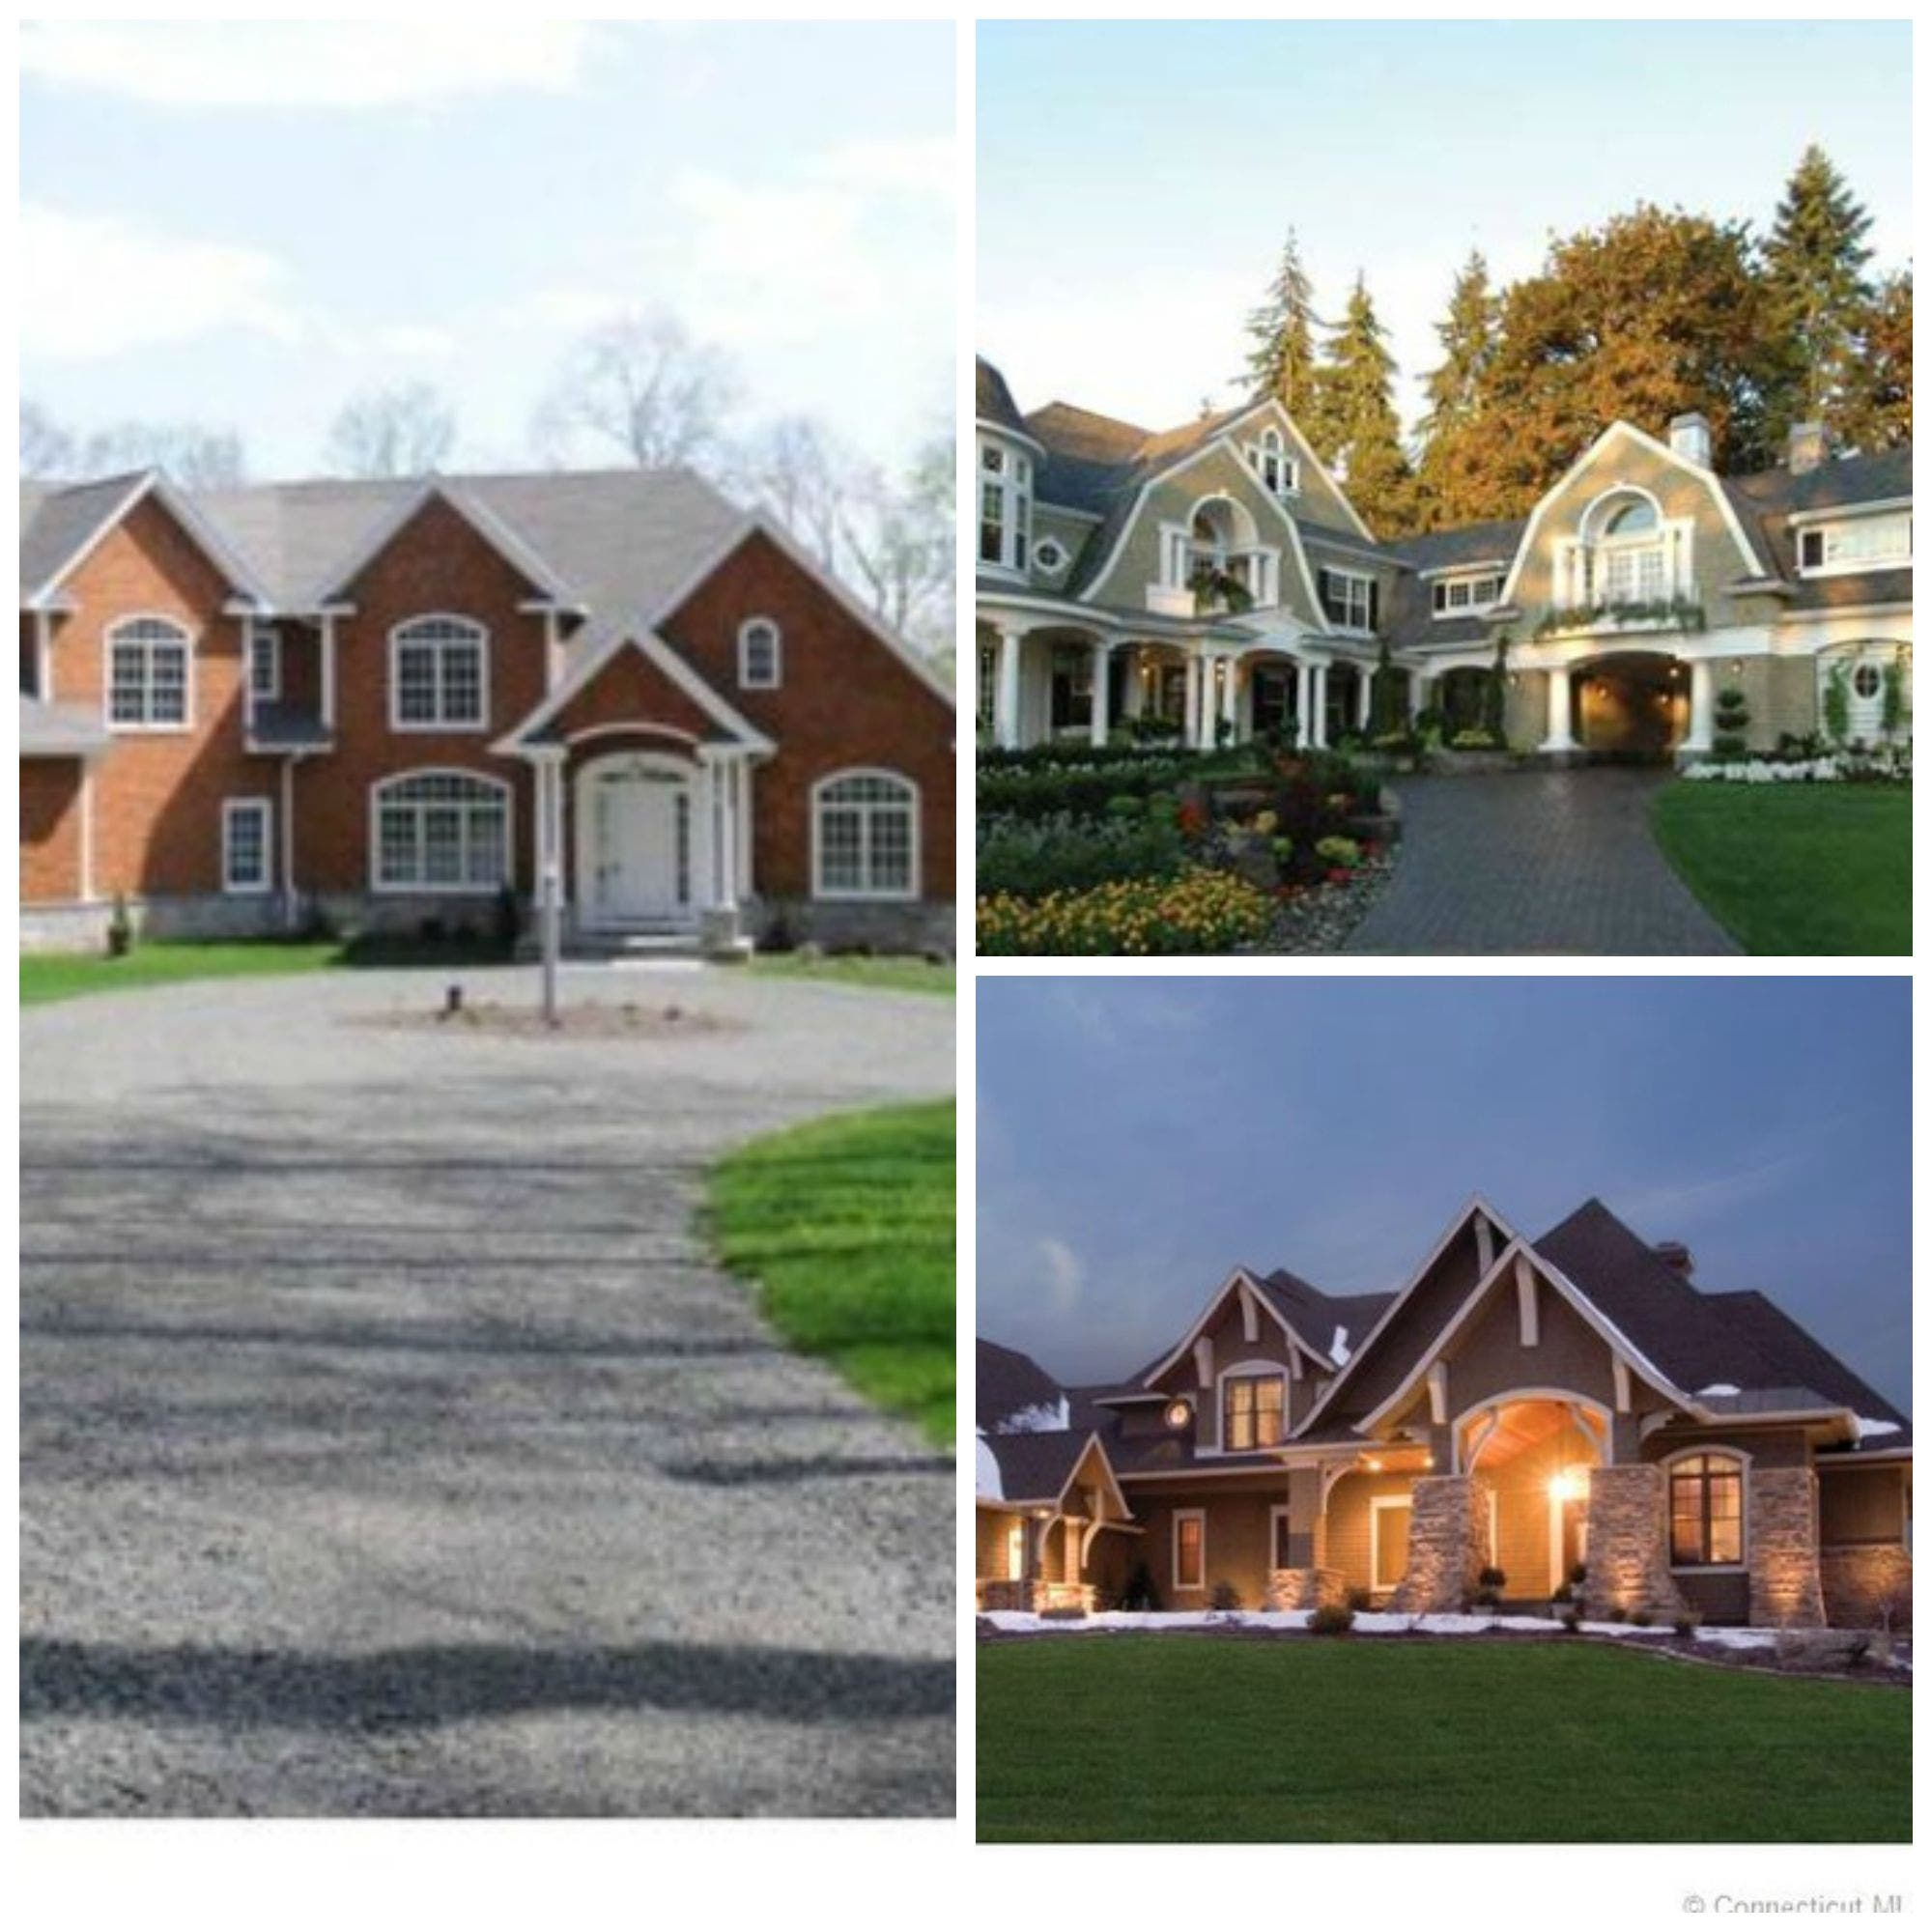 Zillow Real Estate Ct: Oxford's 3 Most Expensive Houses For Sale